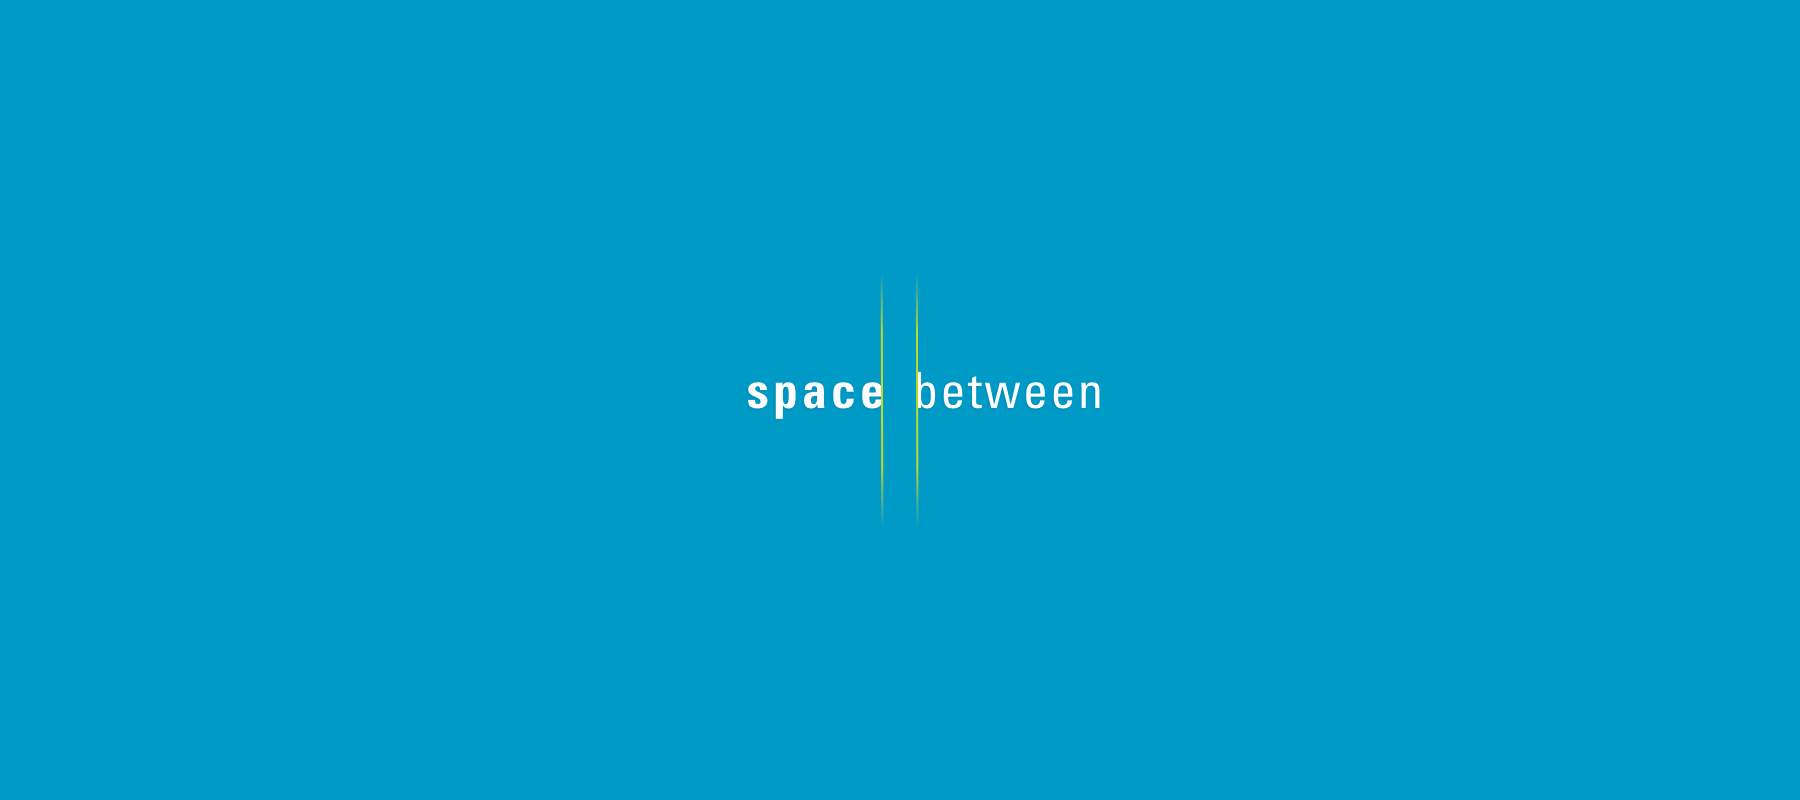 Heroic_Fundraising_Featured_Image_Blue_Background_With_Text_Saying_Space_Between